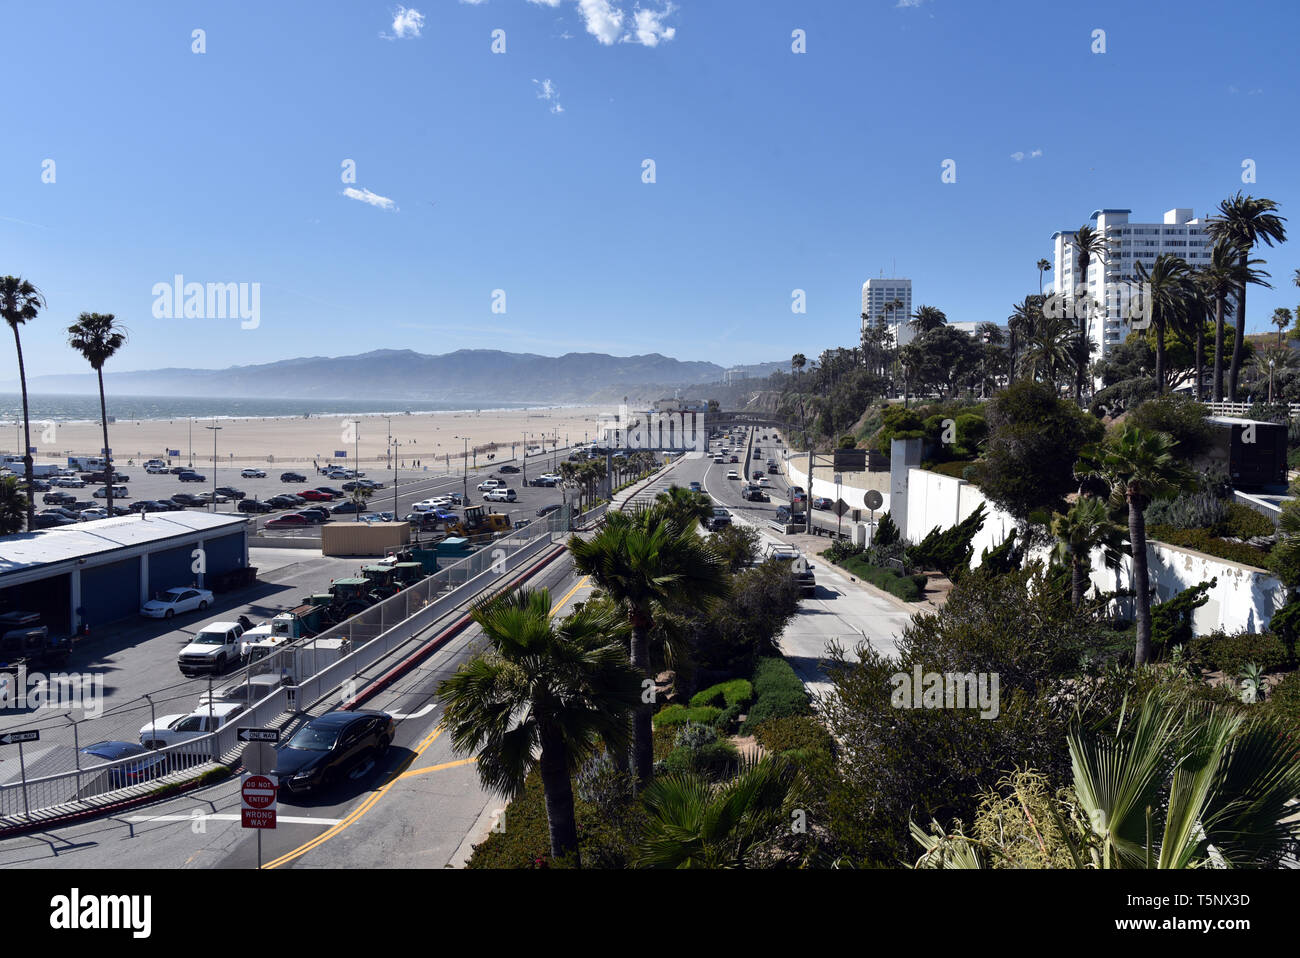 The beautiful iconic Pacific Coast Highway in Santa Monica - Stock Image